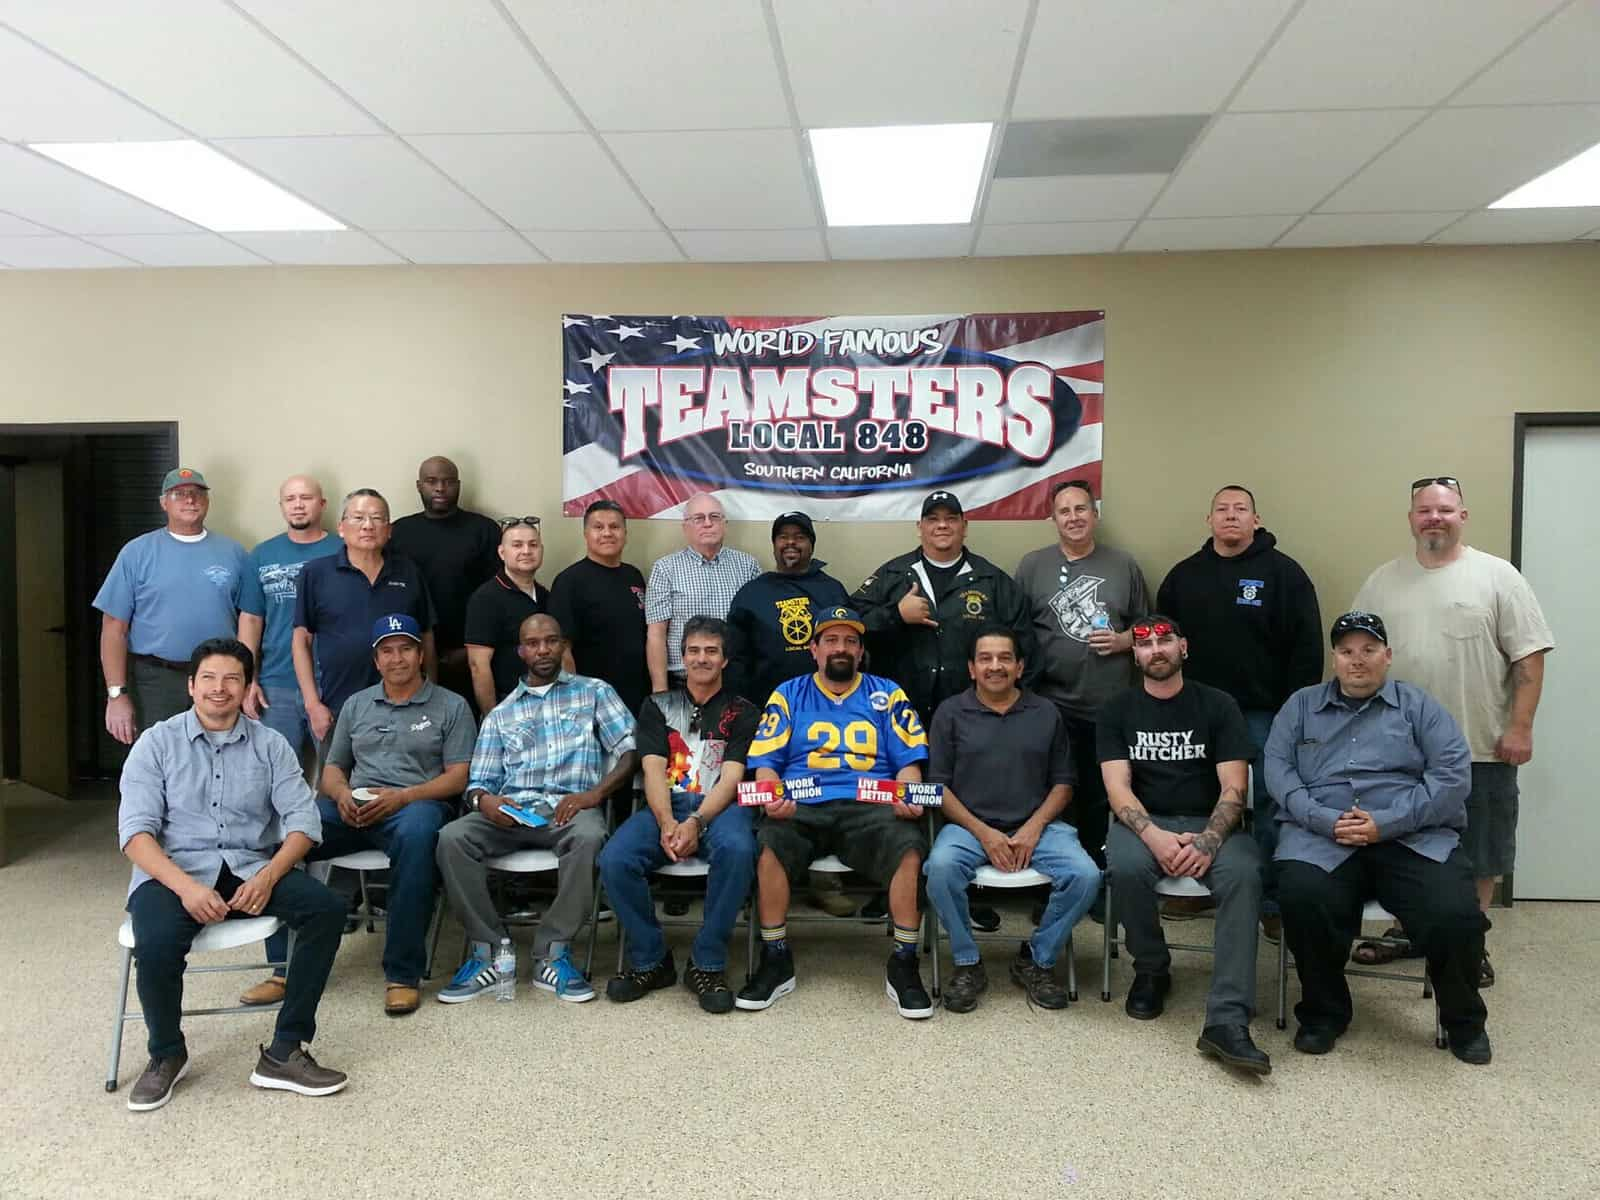 worldfamous848, Author at Teamsters Local 848 - Page 2 of 27